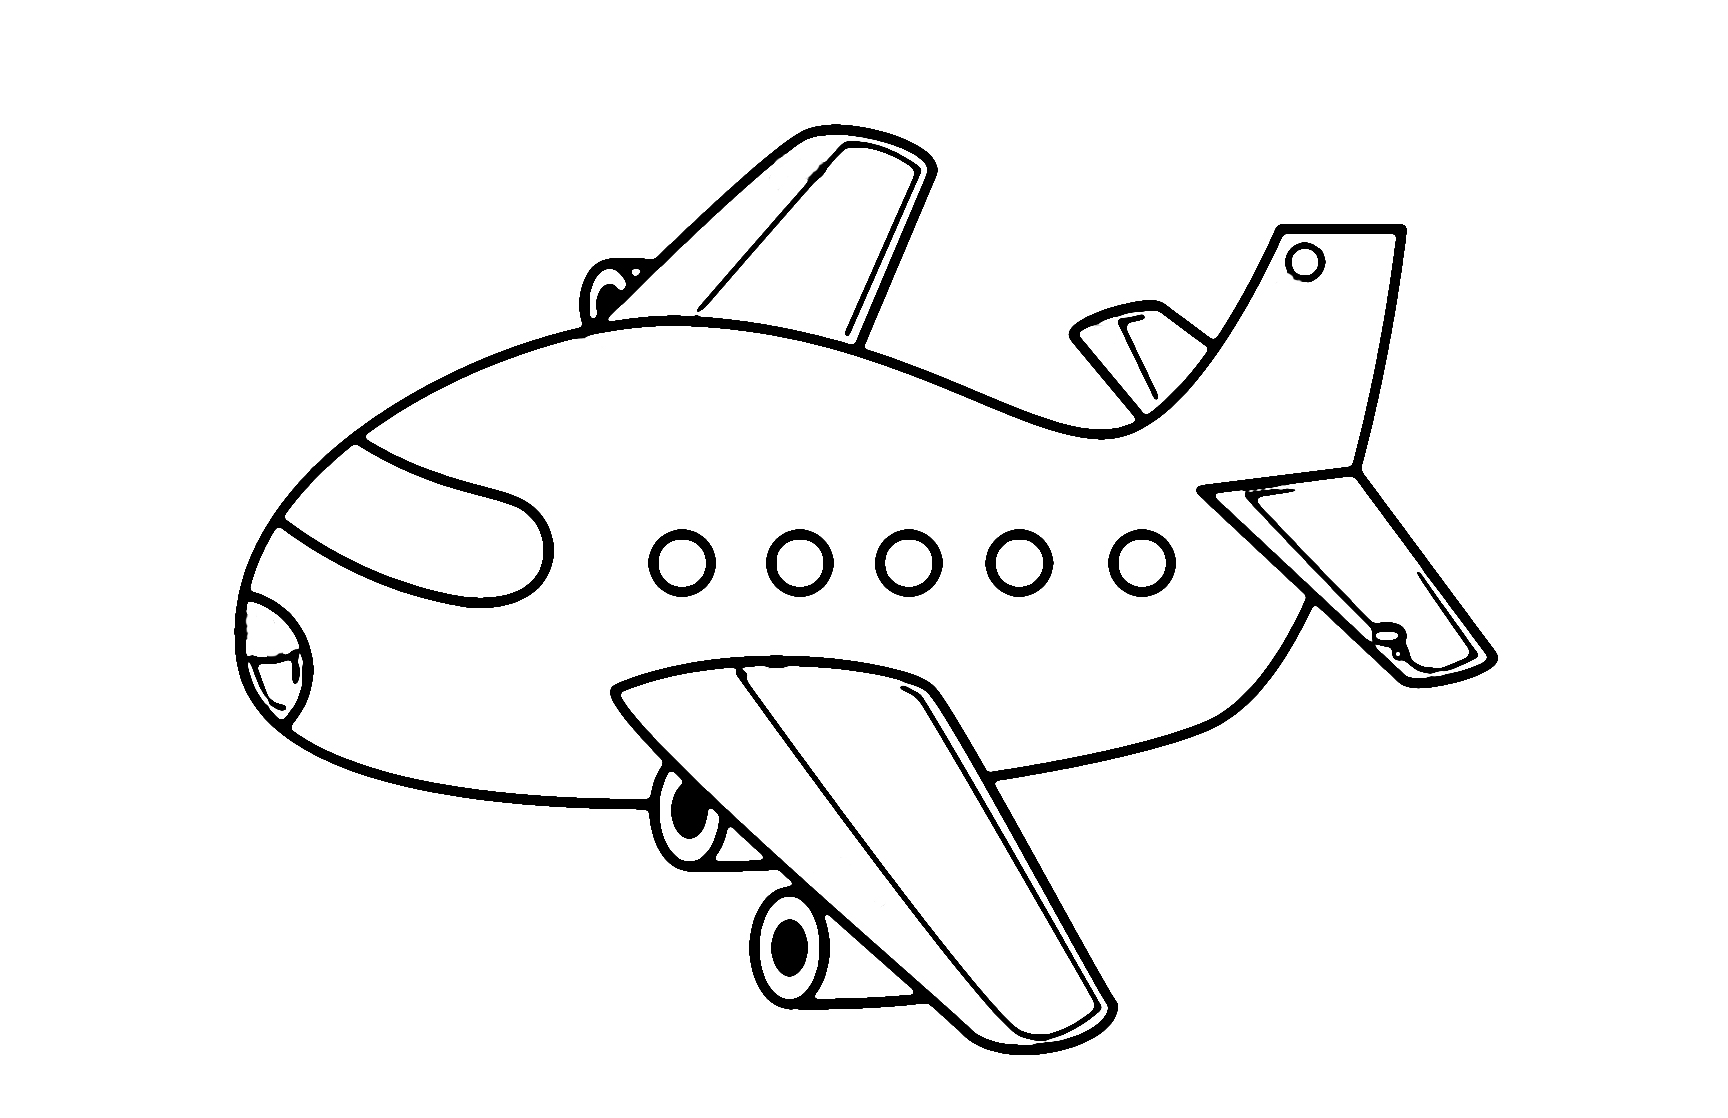 coloring airplane pictures airplane print out coloring pages bestappsforkidscom pictures coloring airplane